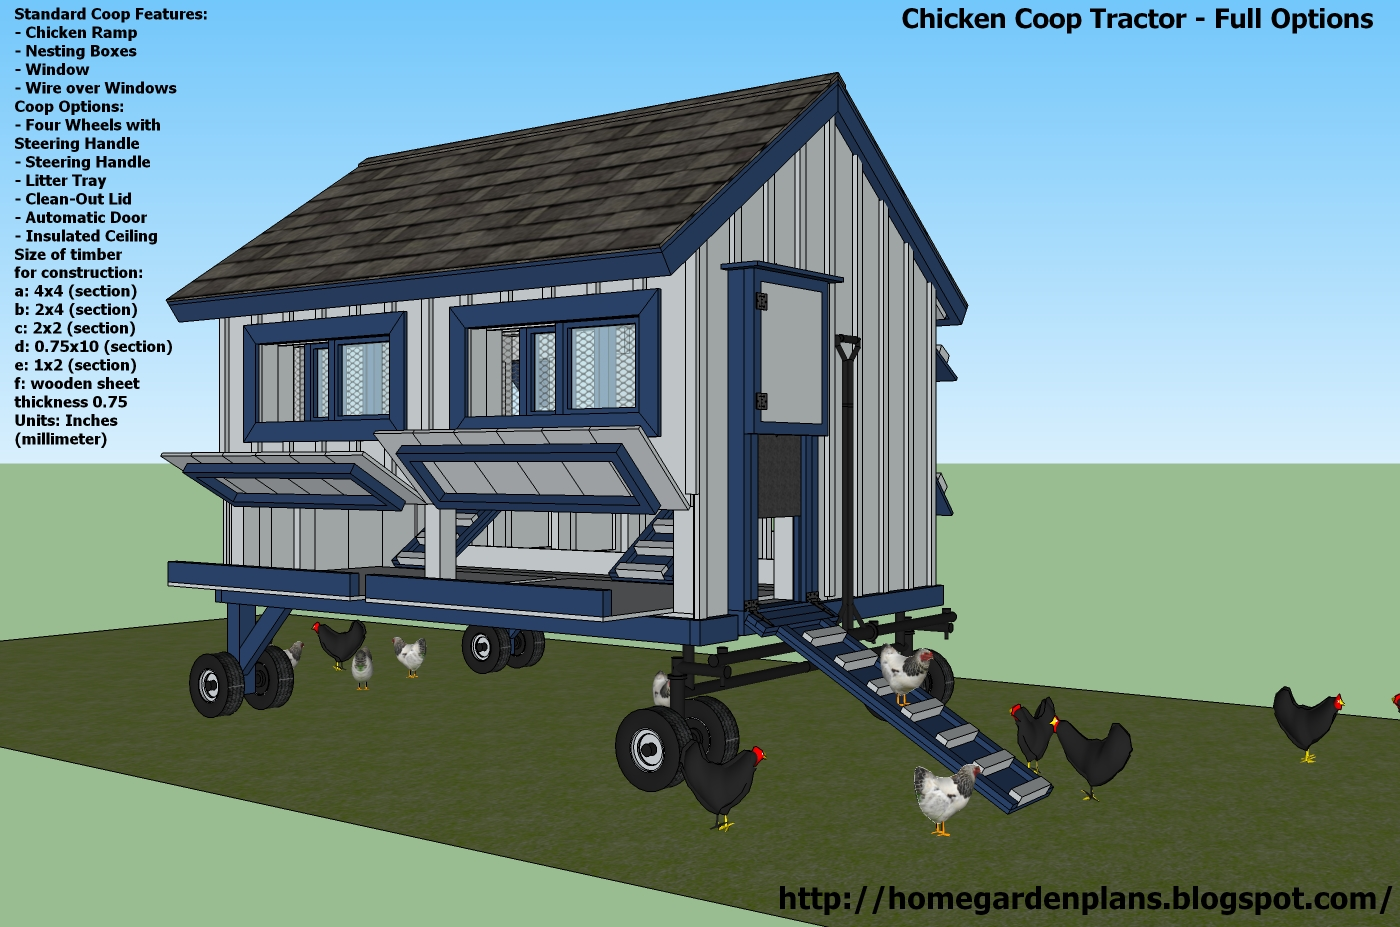 Home garden plans t300 chicken coop plans free for Free coop plans